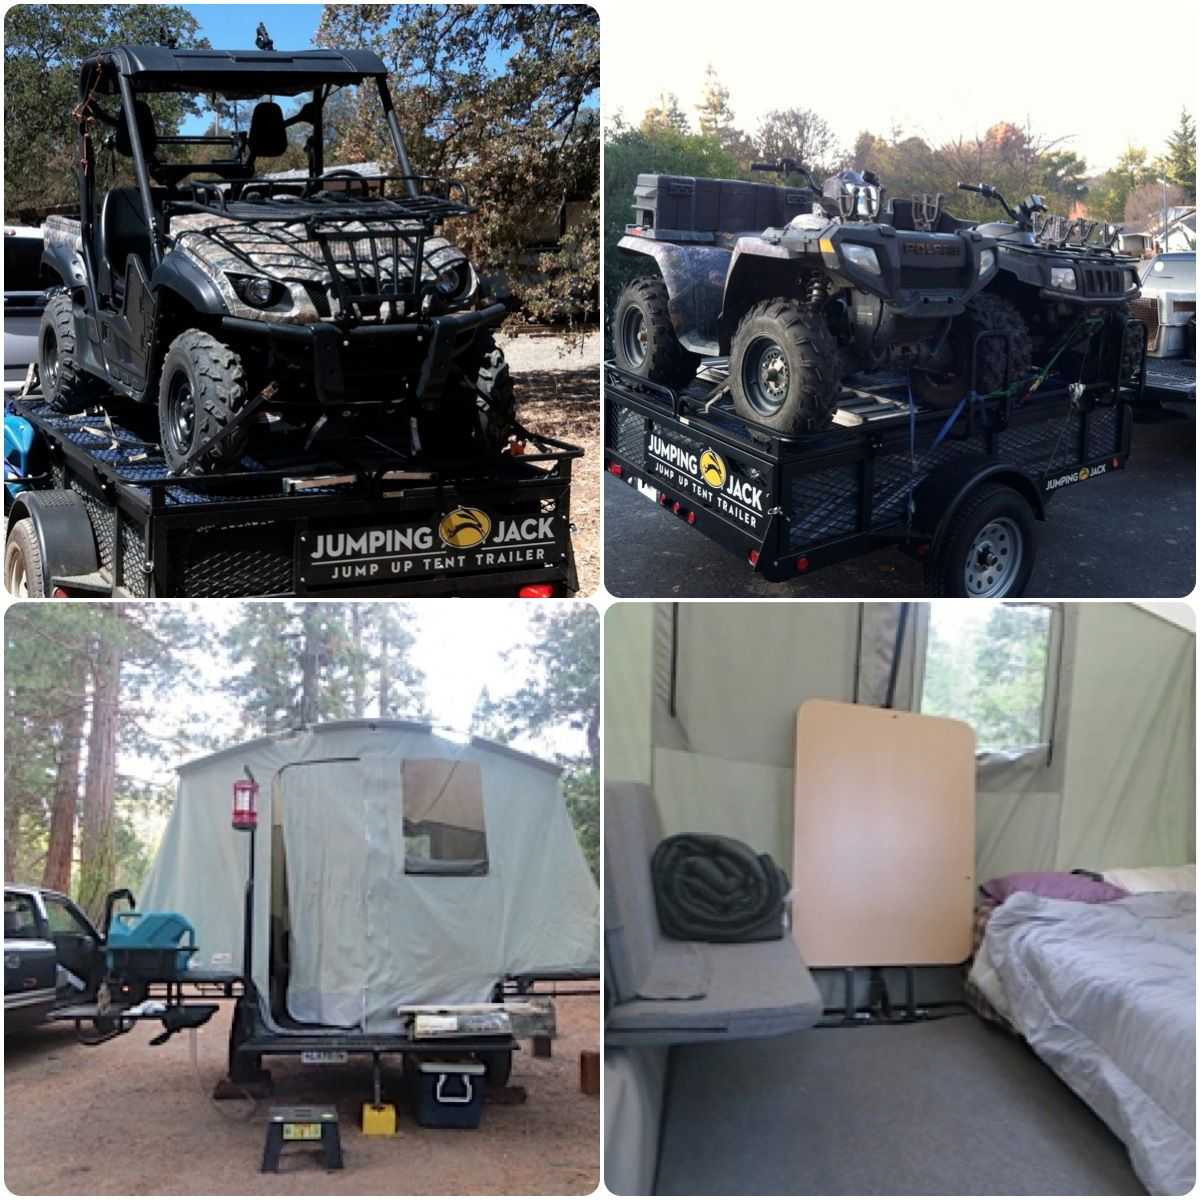 Tent Trailers Jumping Jack Trailers Jumping Jack Trailer Tent Trailer Camping